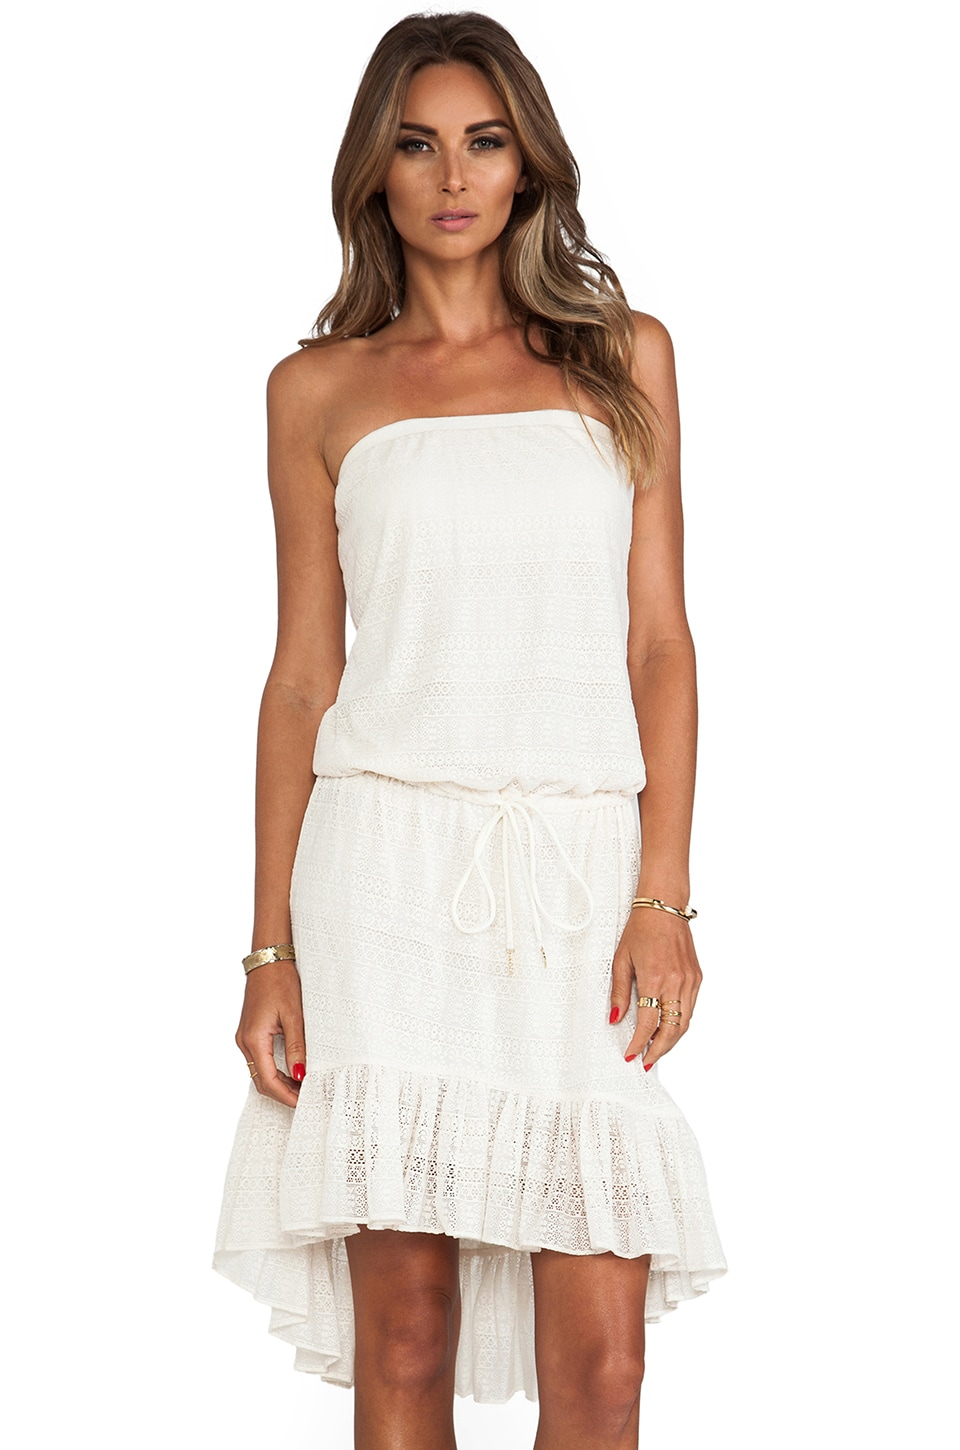 Juicy Couture Prima Donna Cover Up Dress in Angel